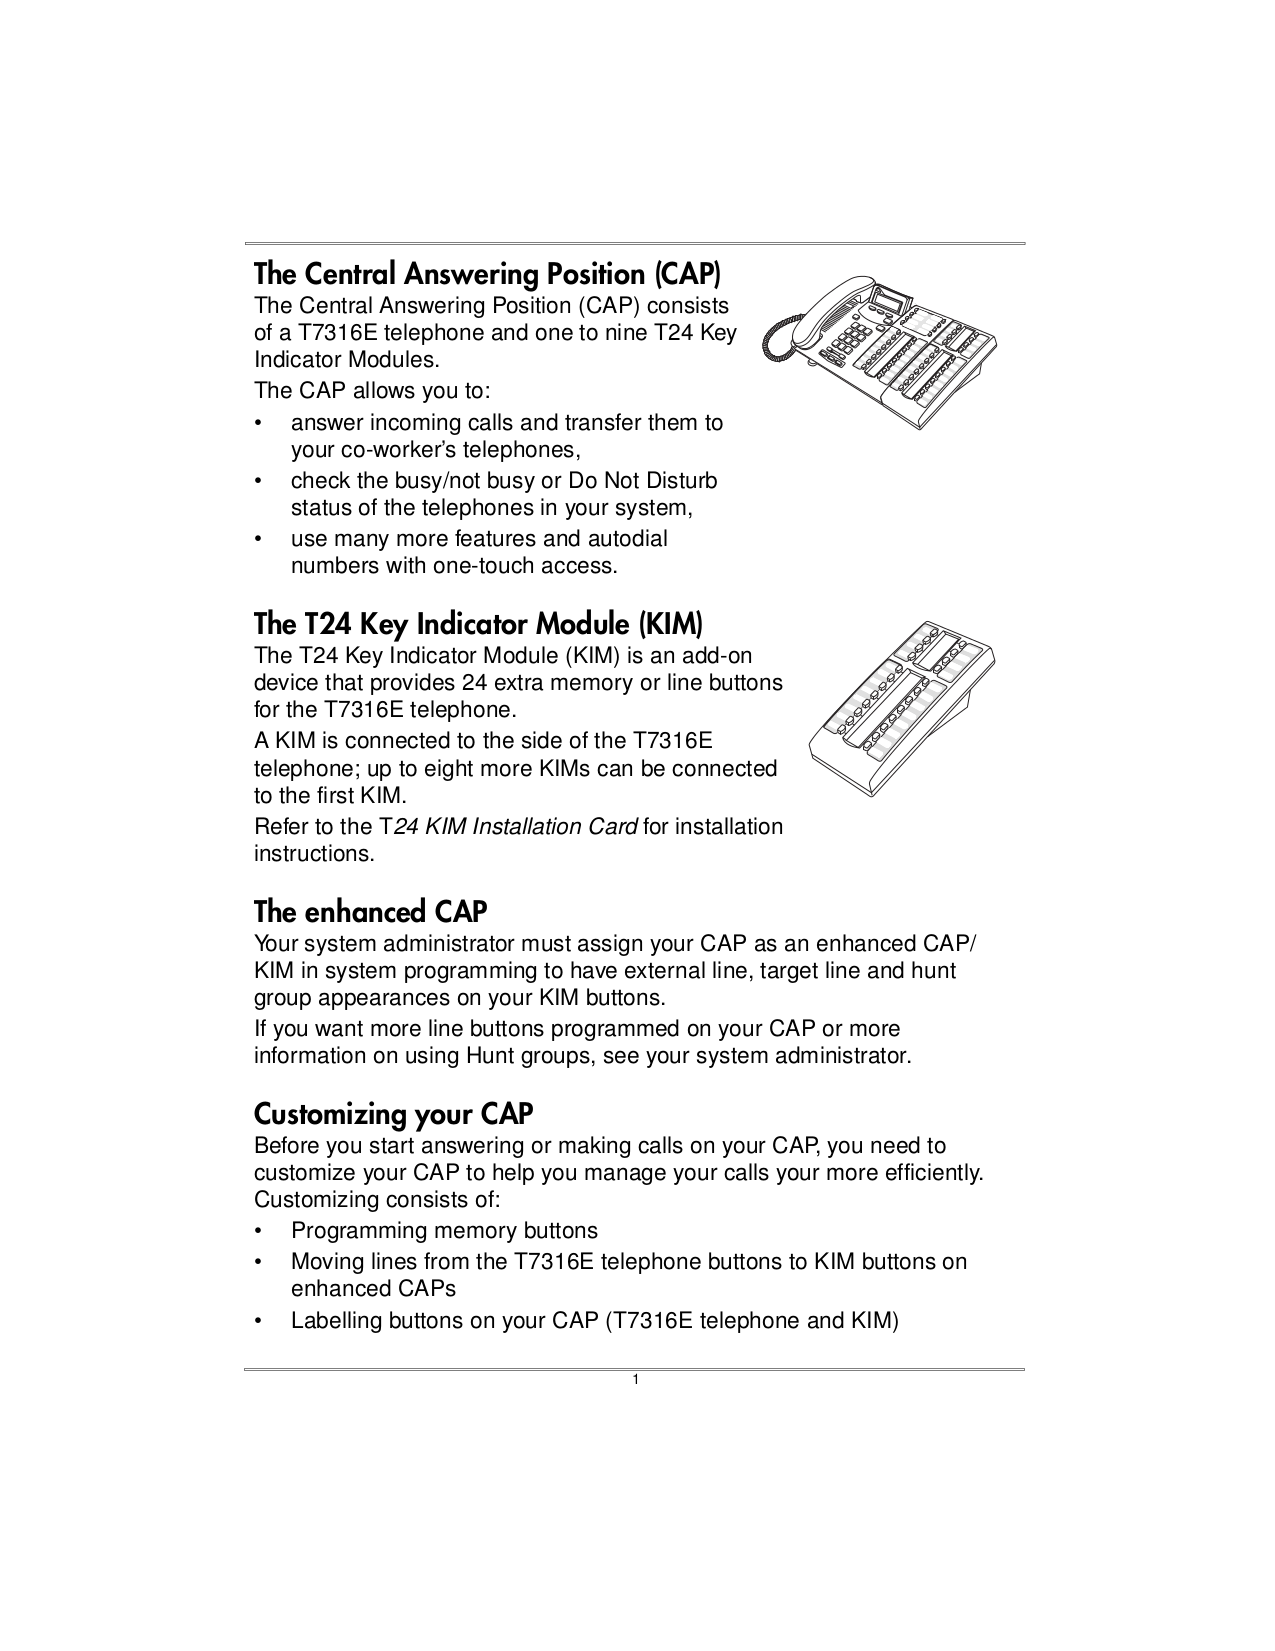 PDF manual for Nortel Telephone T24